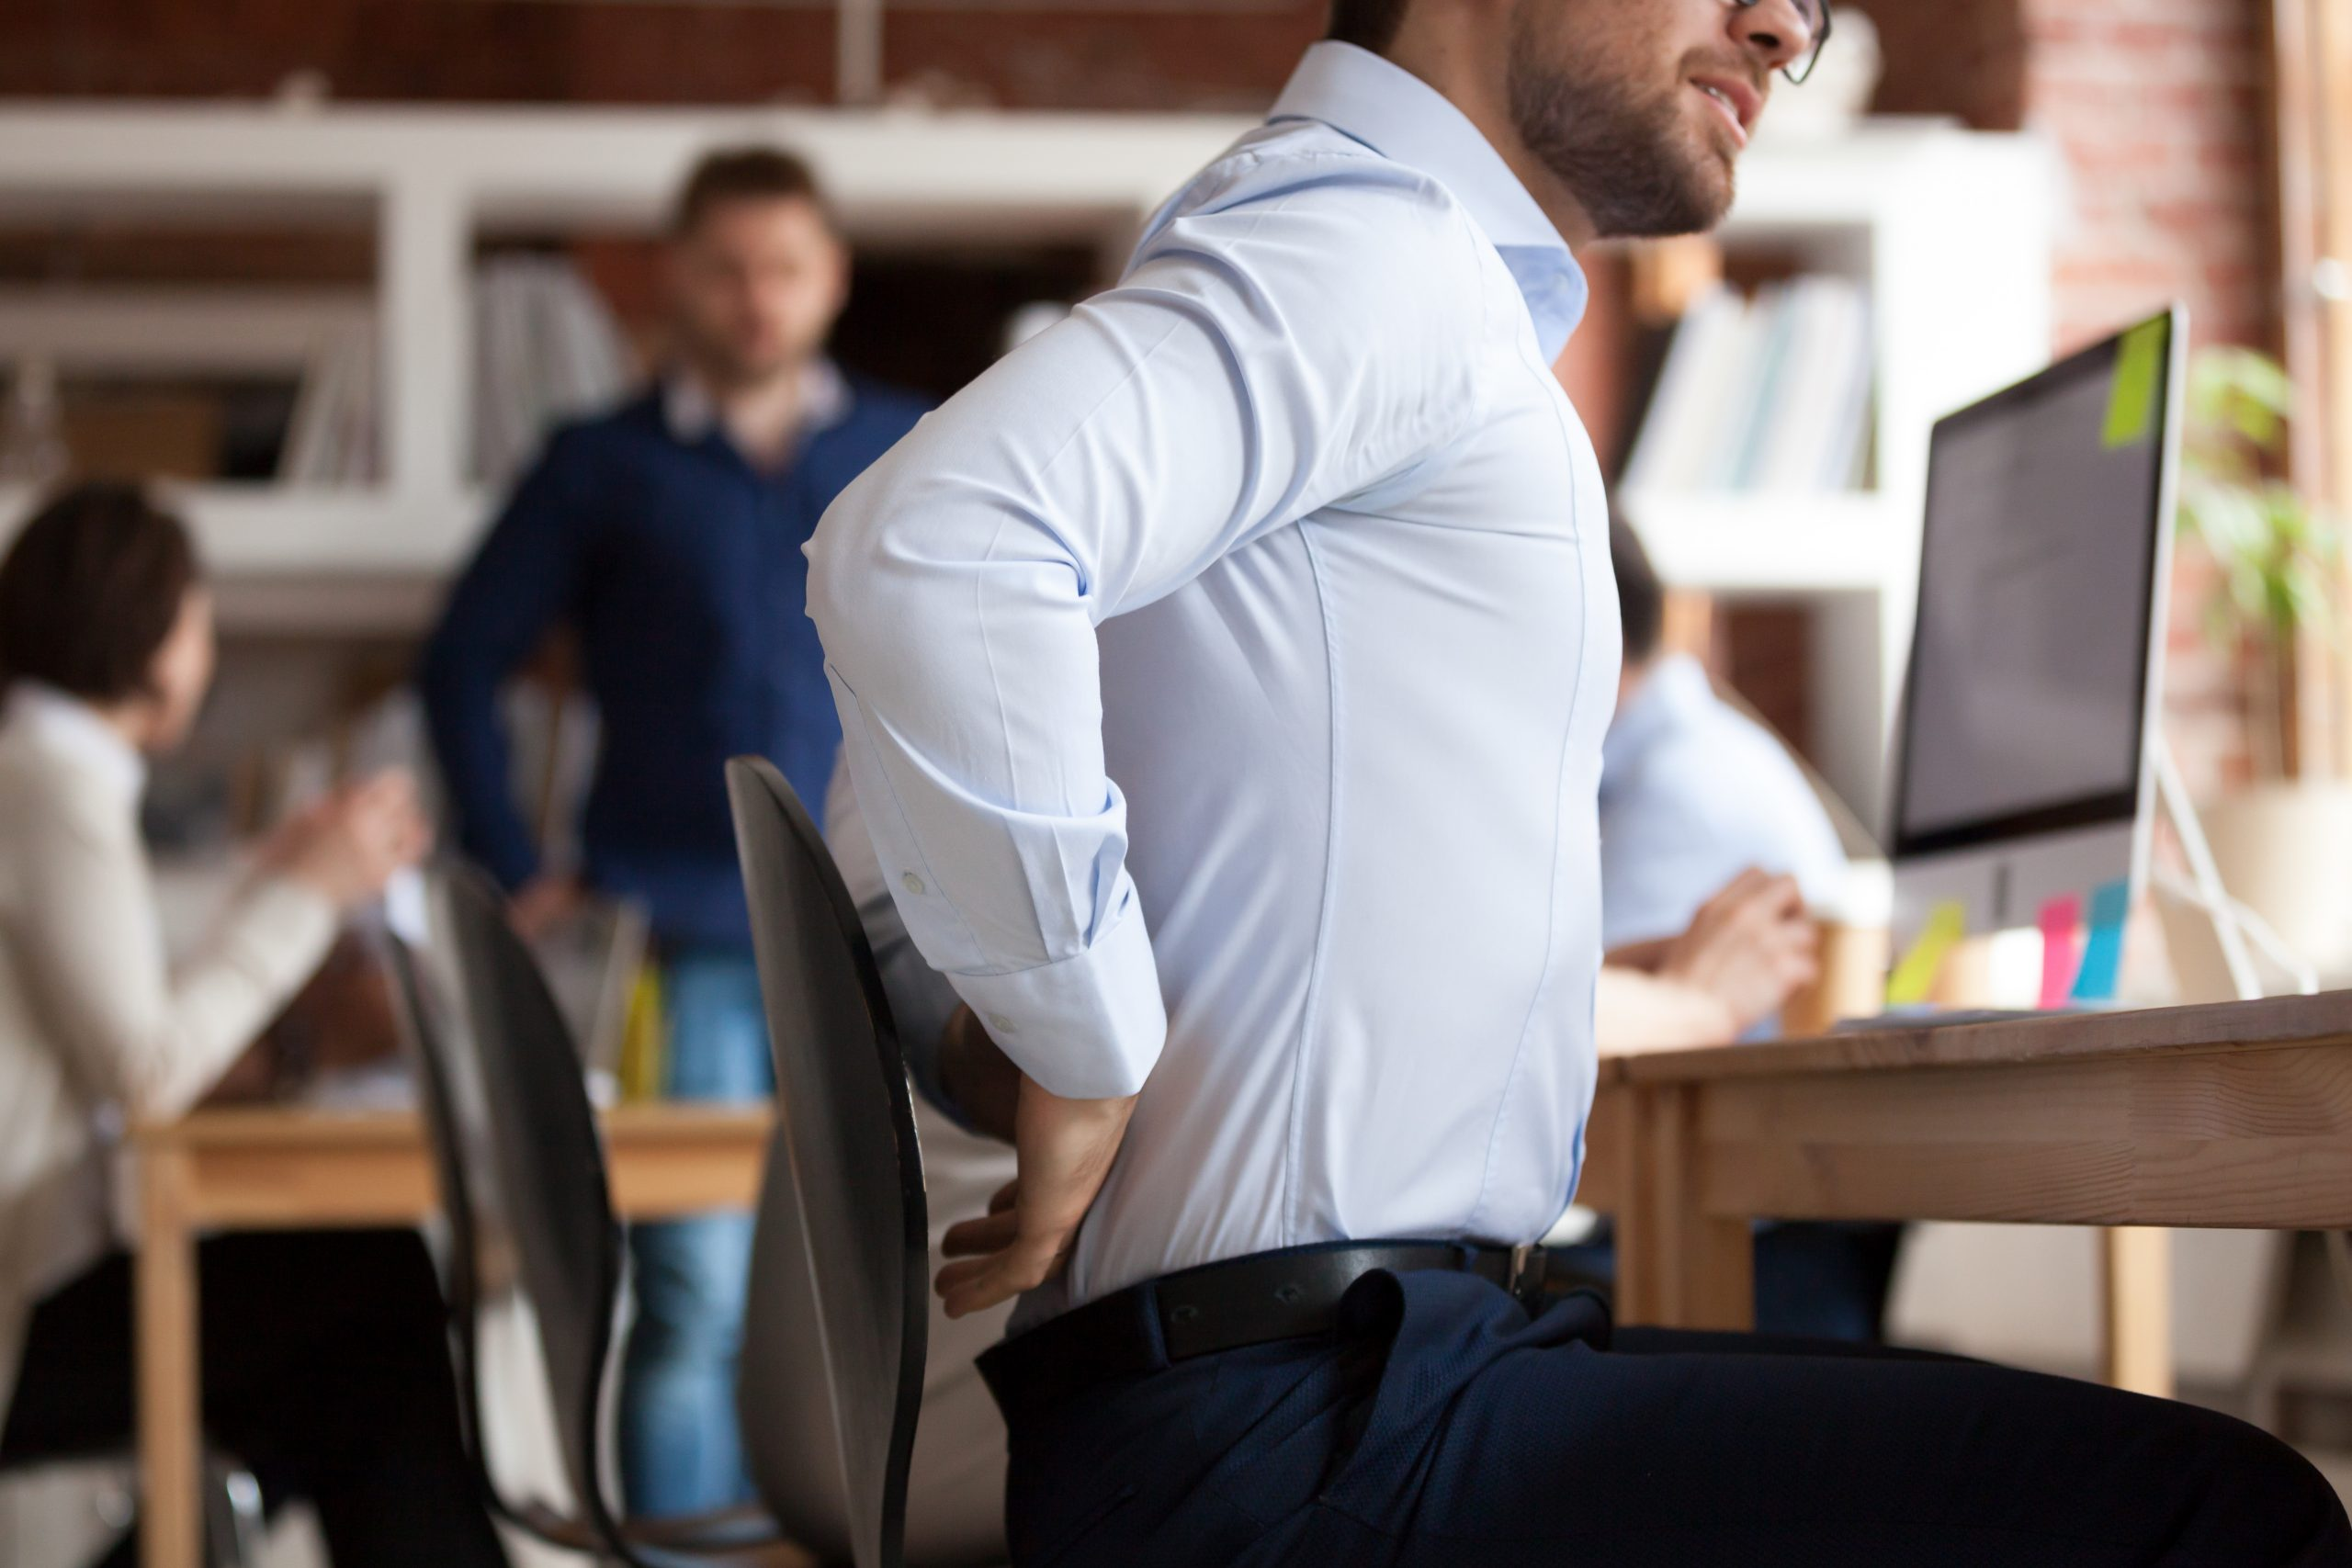 Looking for the best sciatica pain specialist in new york? This leading Harvard medical group uses the latest treatments that avoid surgery. Who is the best doctor?